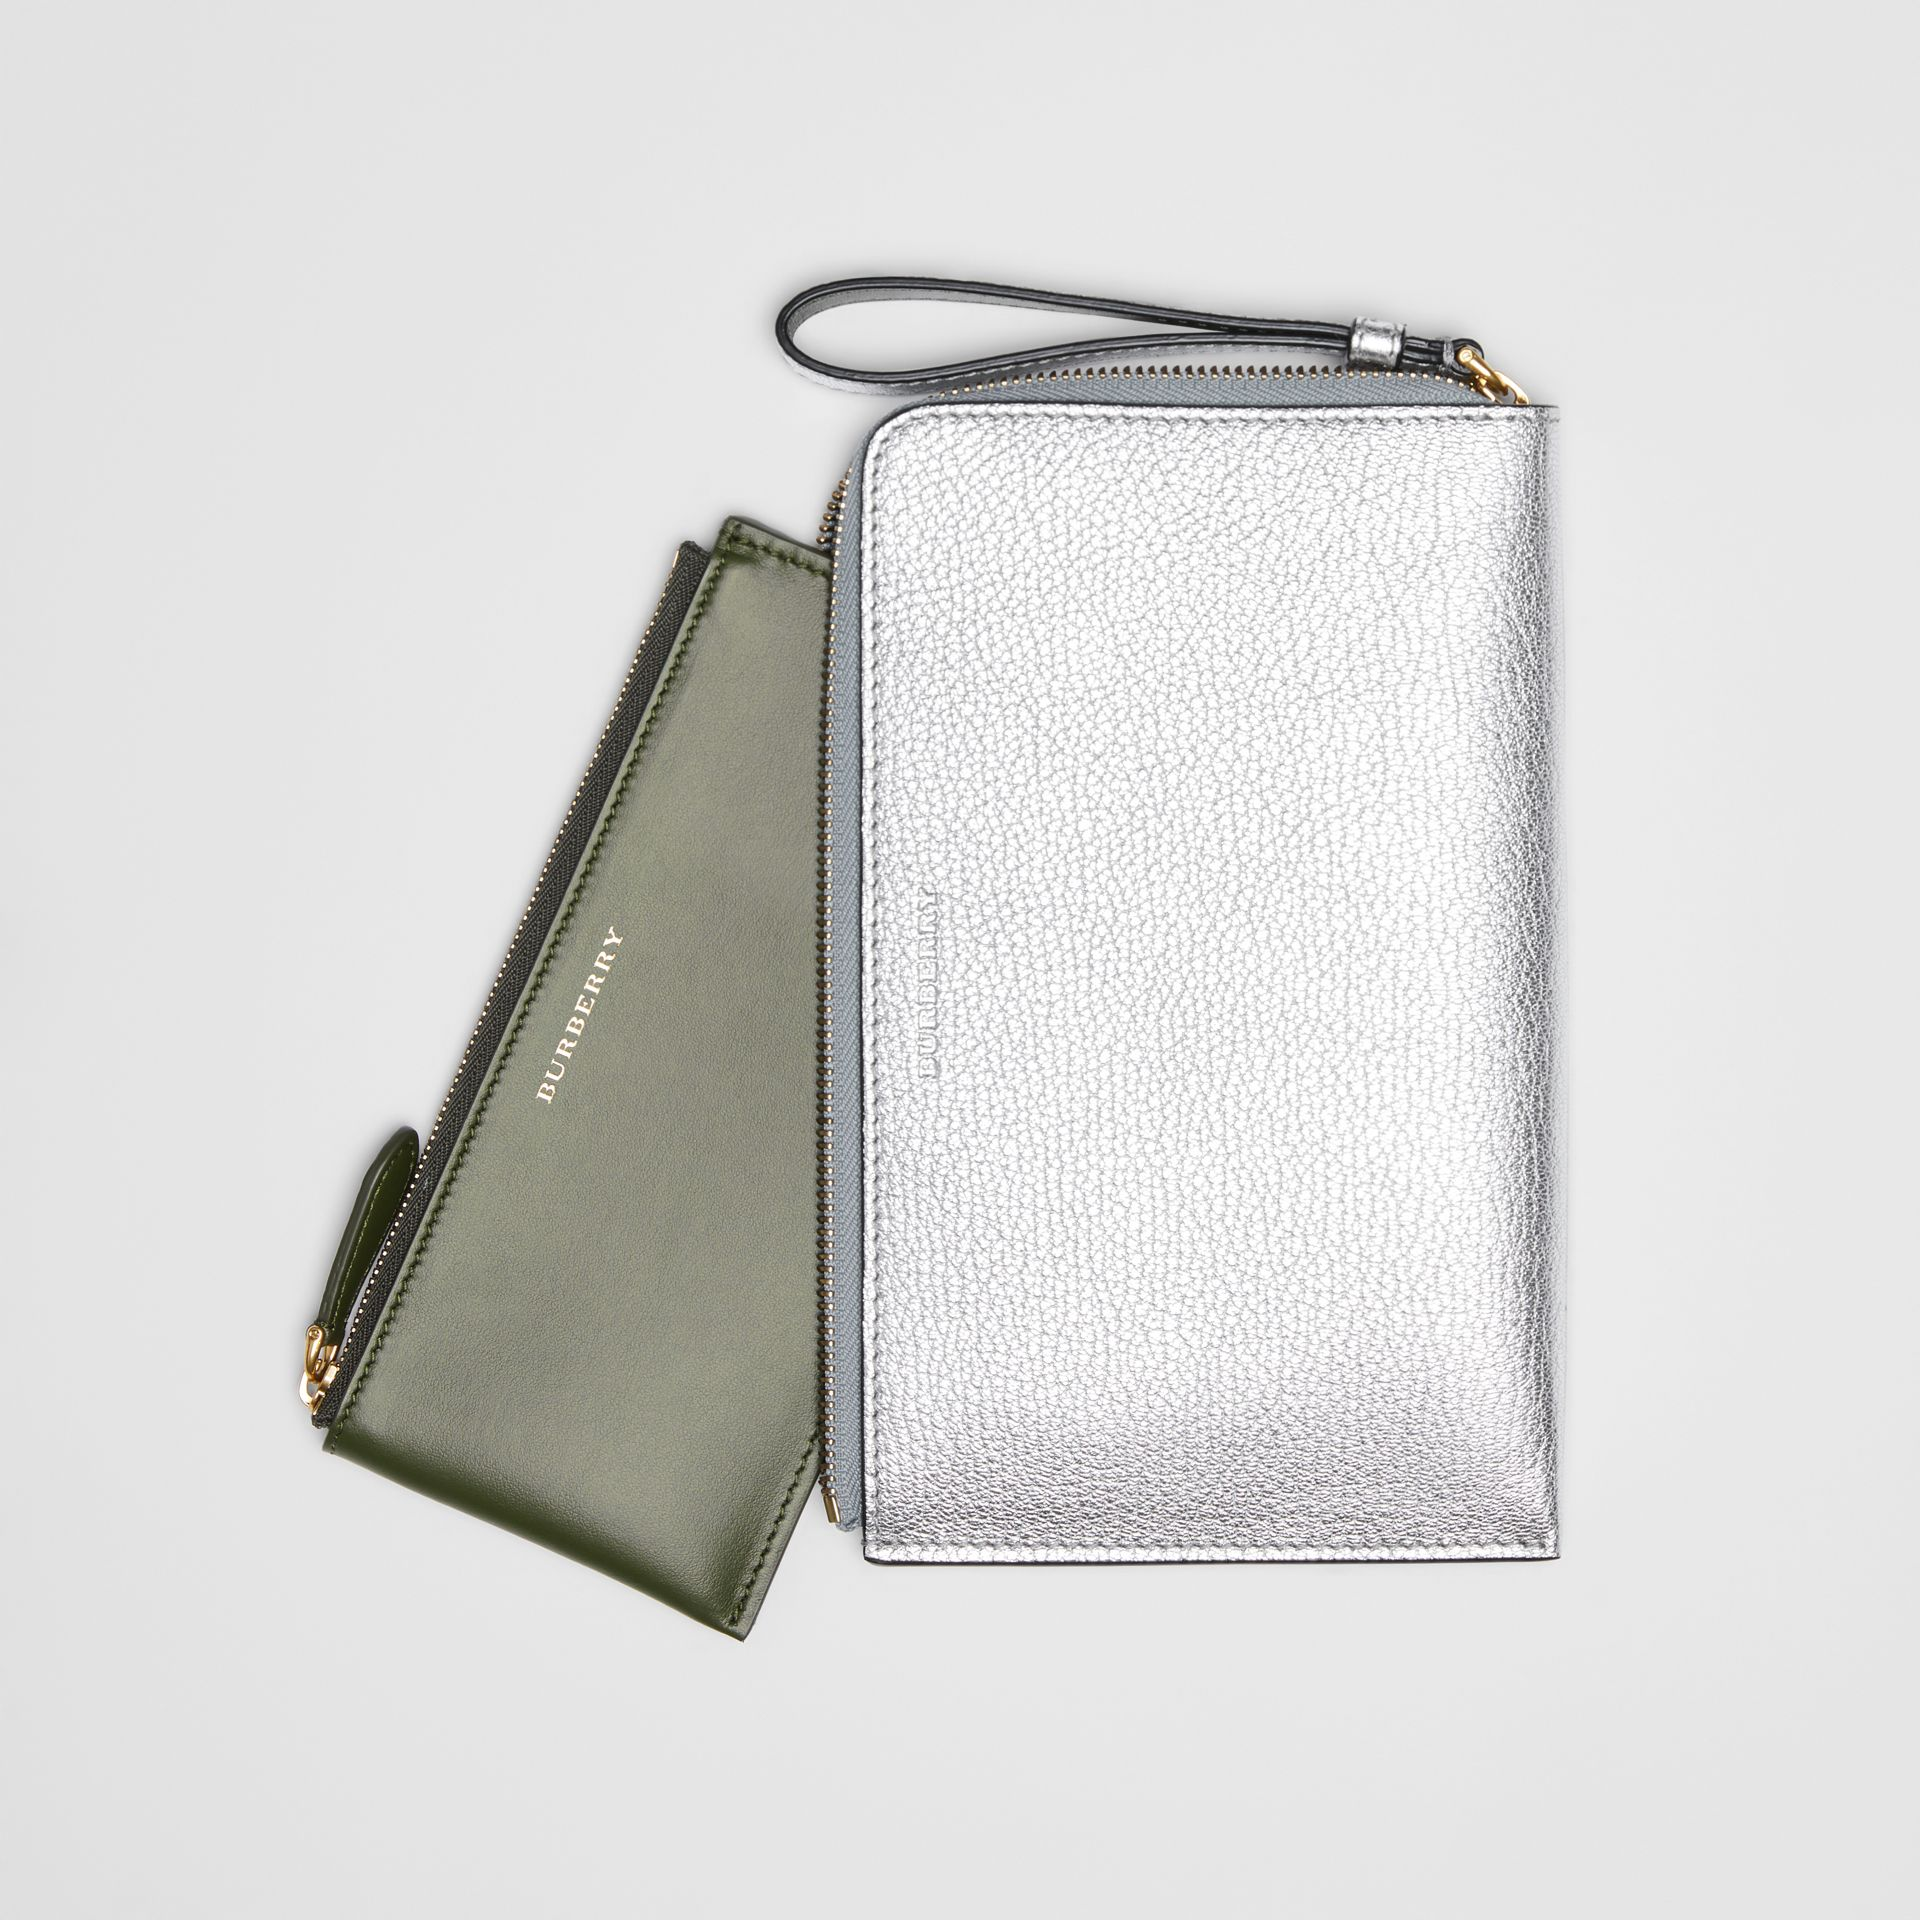 Two-tone Metallic Leather Travel Wallet in Silver - Women | Burberry Australia - gallery image 6